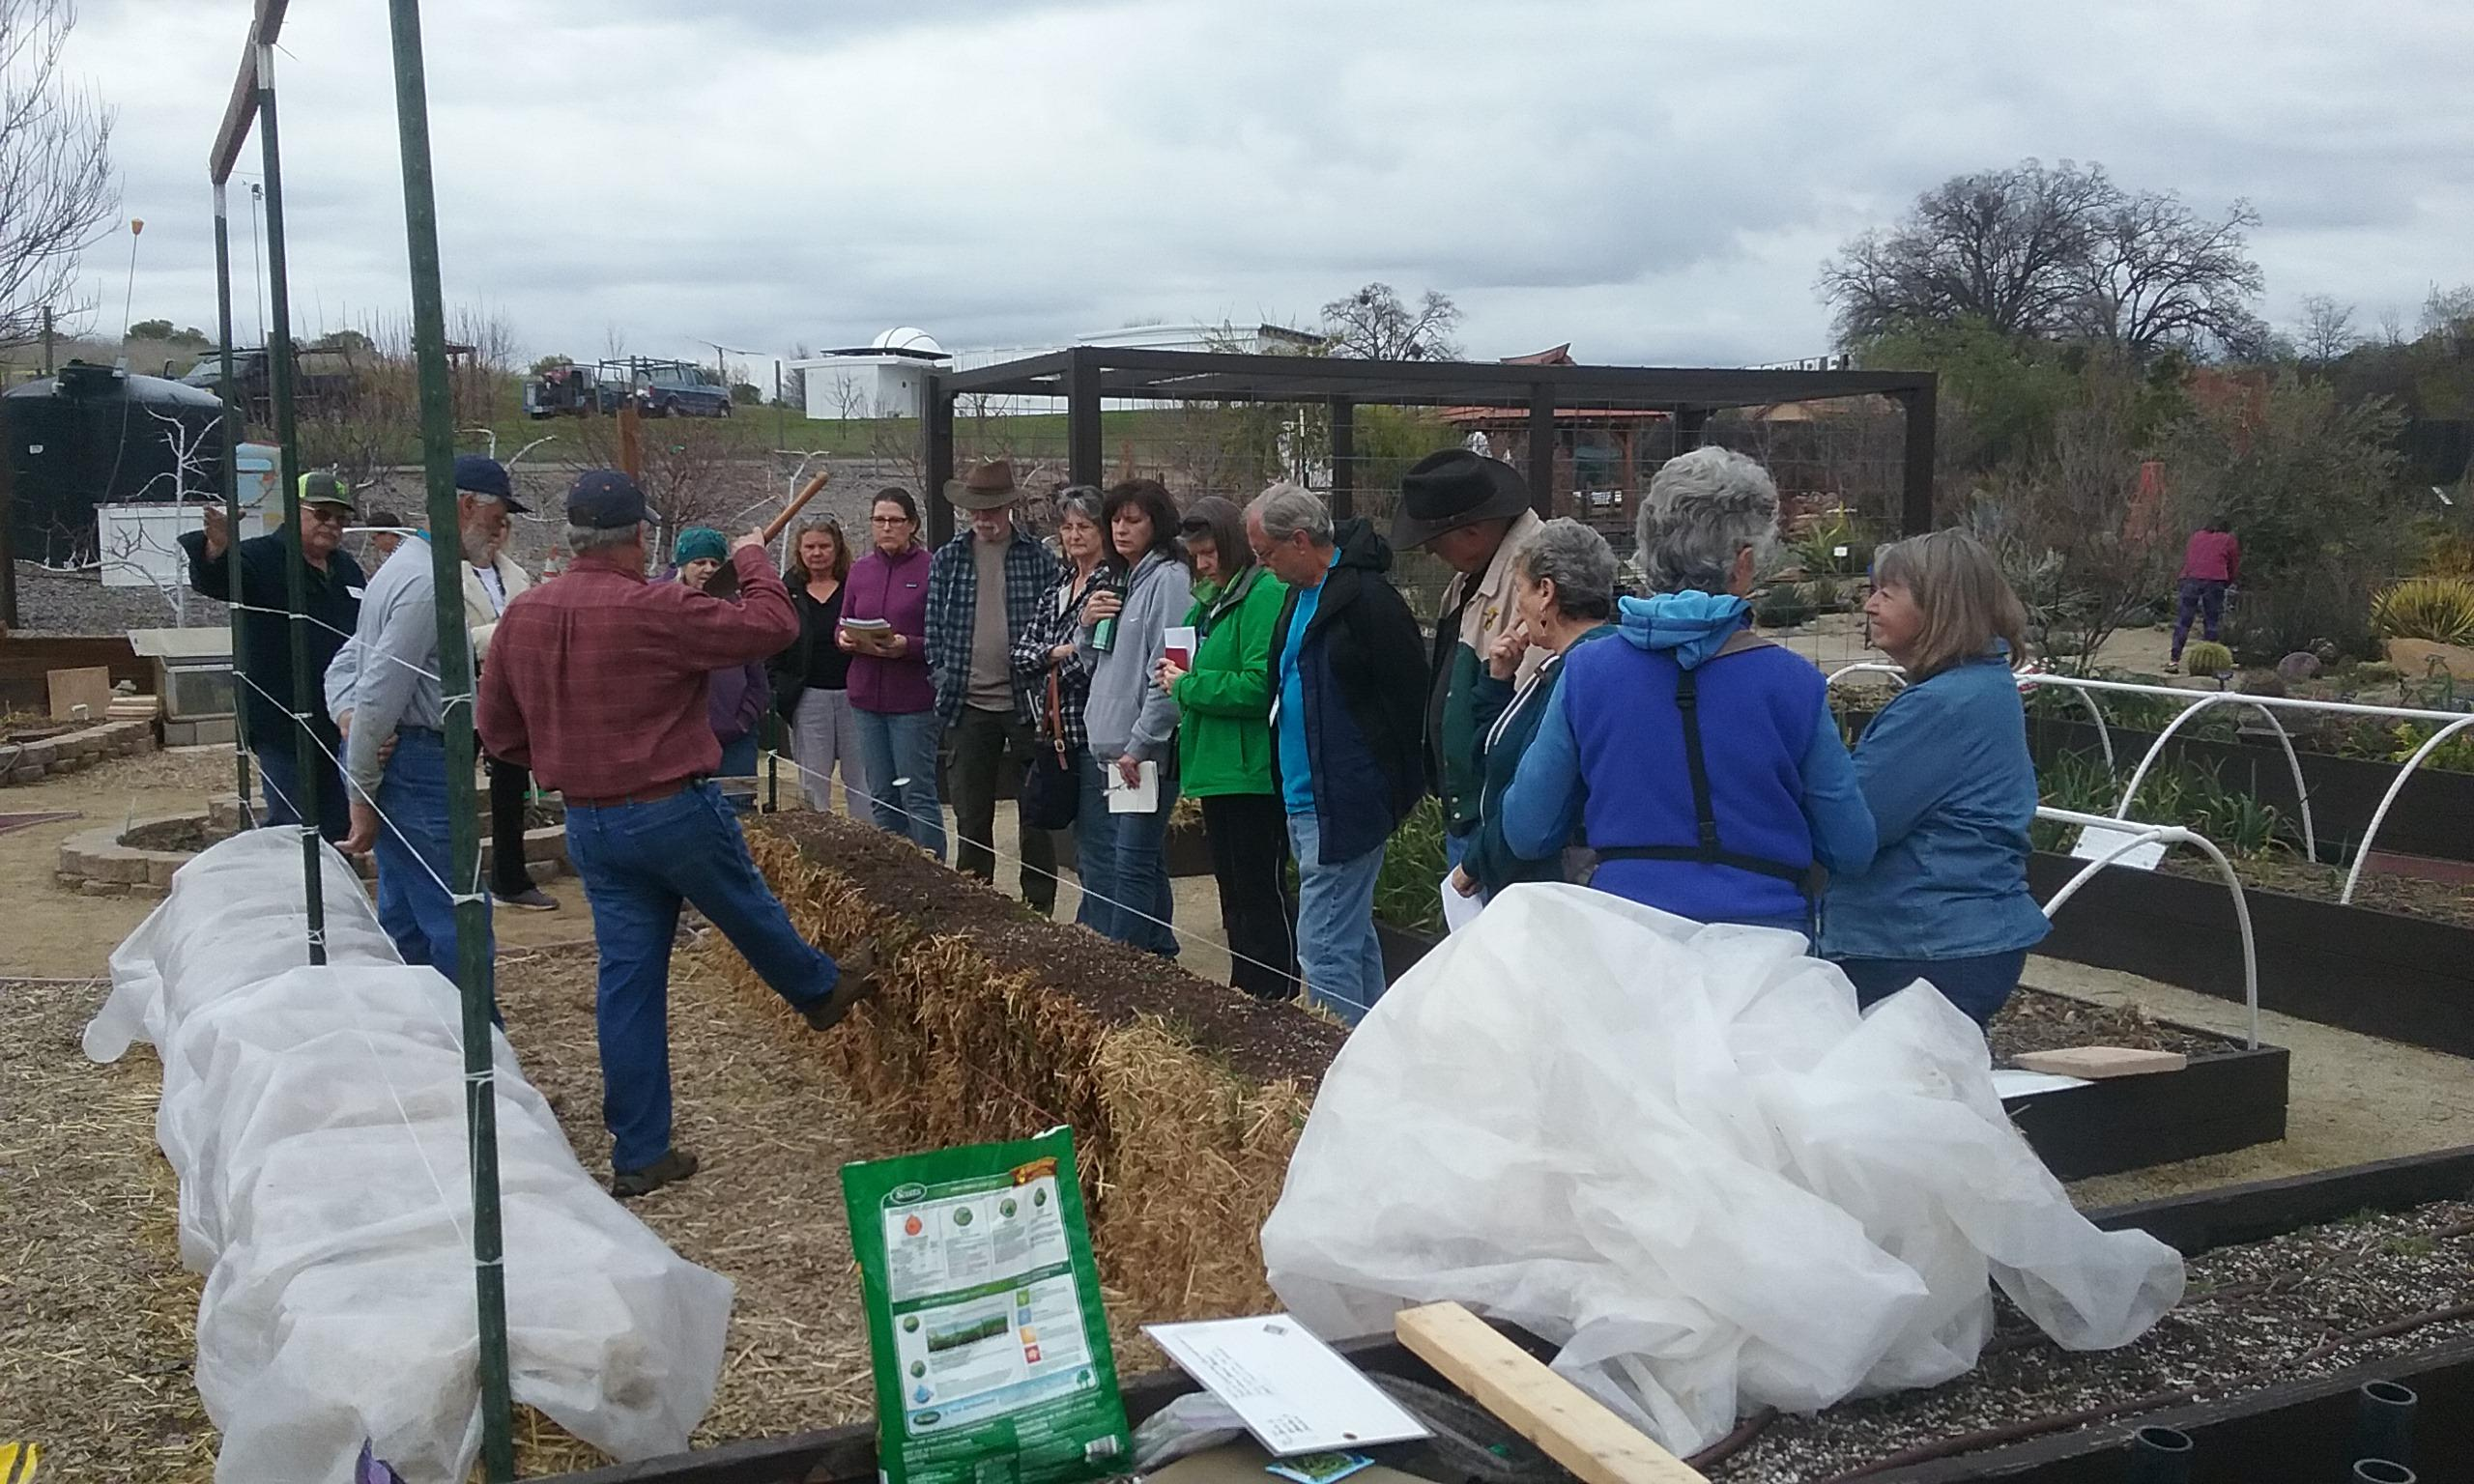 3-10-2018, 2nd Public class 'Straw Bale Gardening - Part 2' - planting